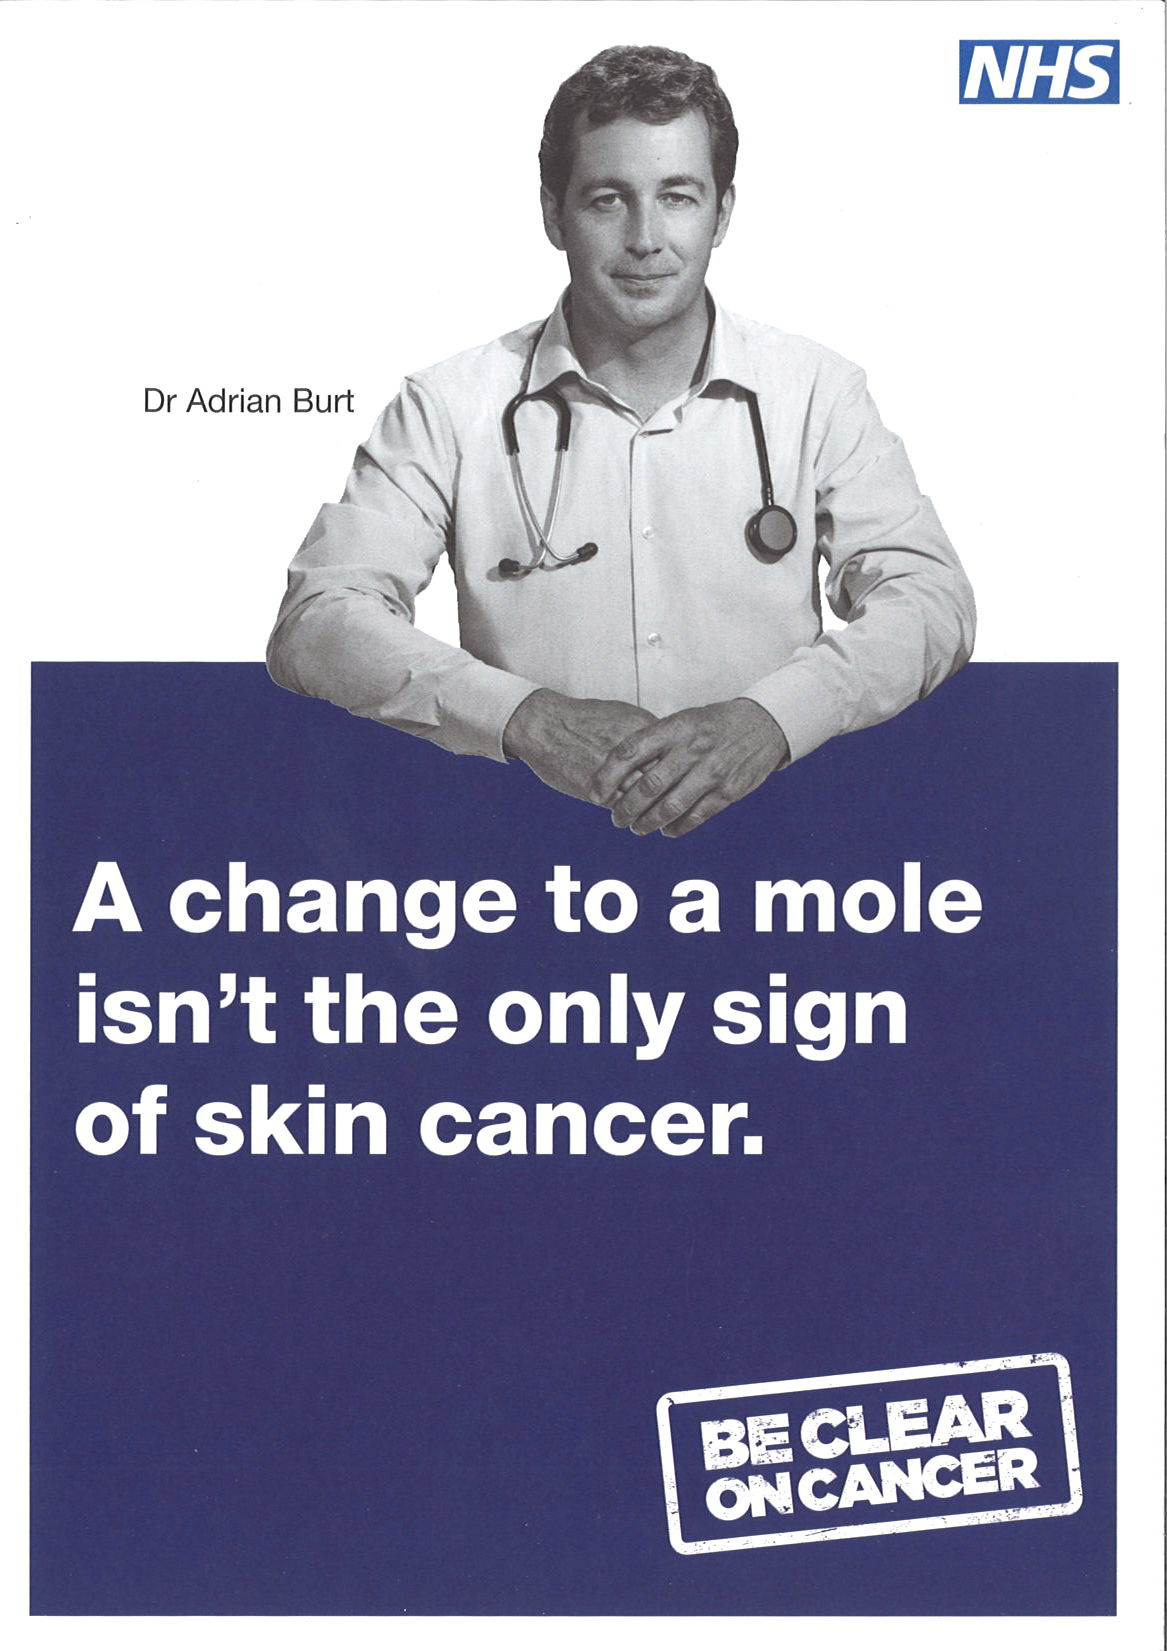 Image result for nhs be clear on cancer skin cancer